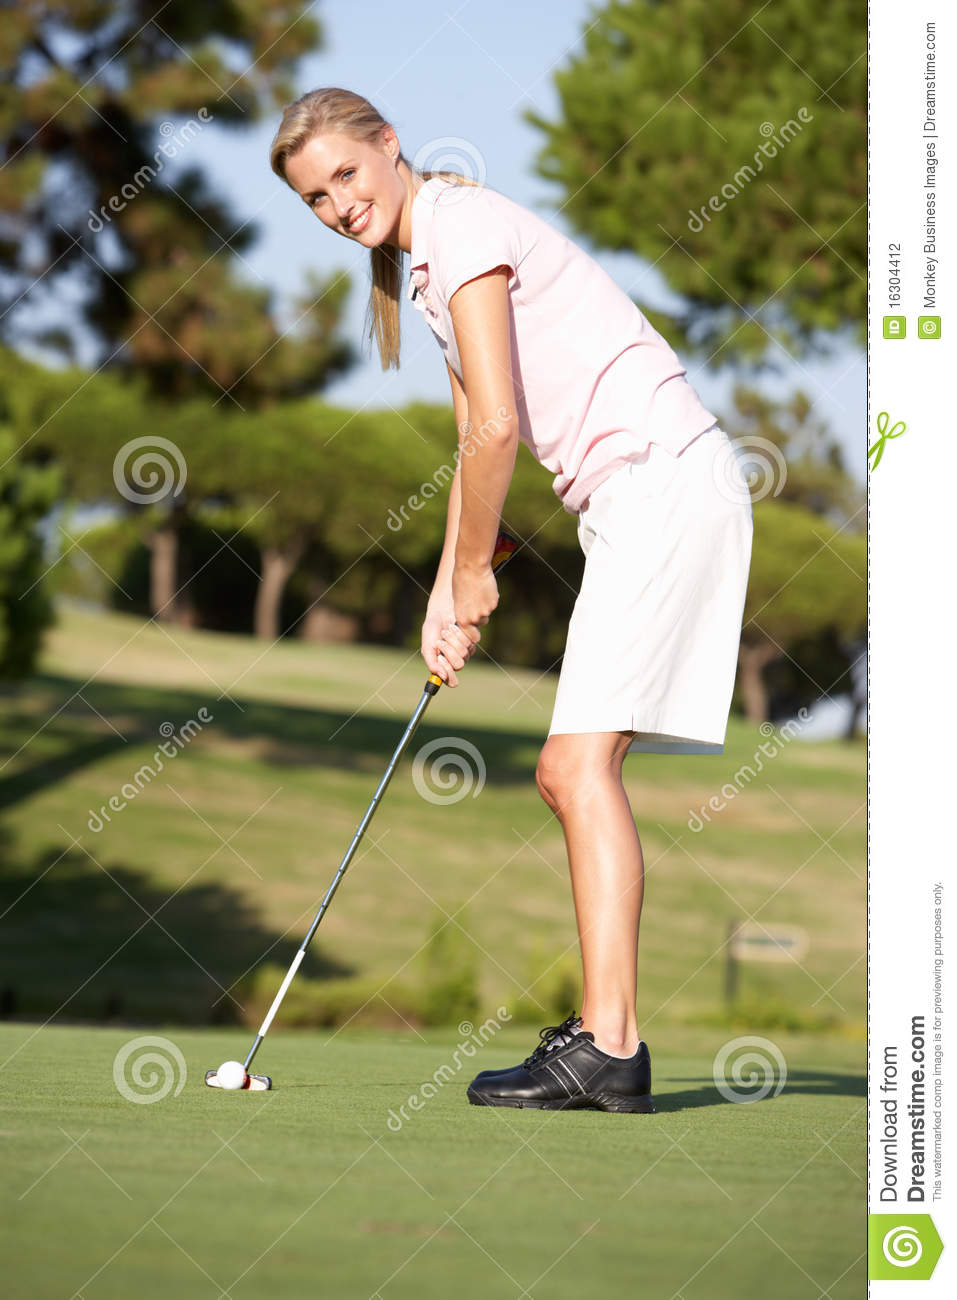 Young Female Golf Player On Course Stock Photo - Image of